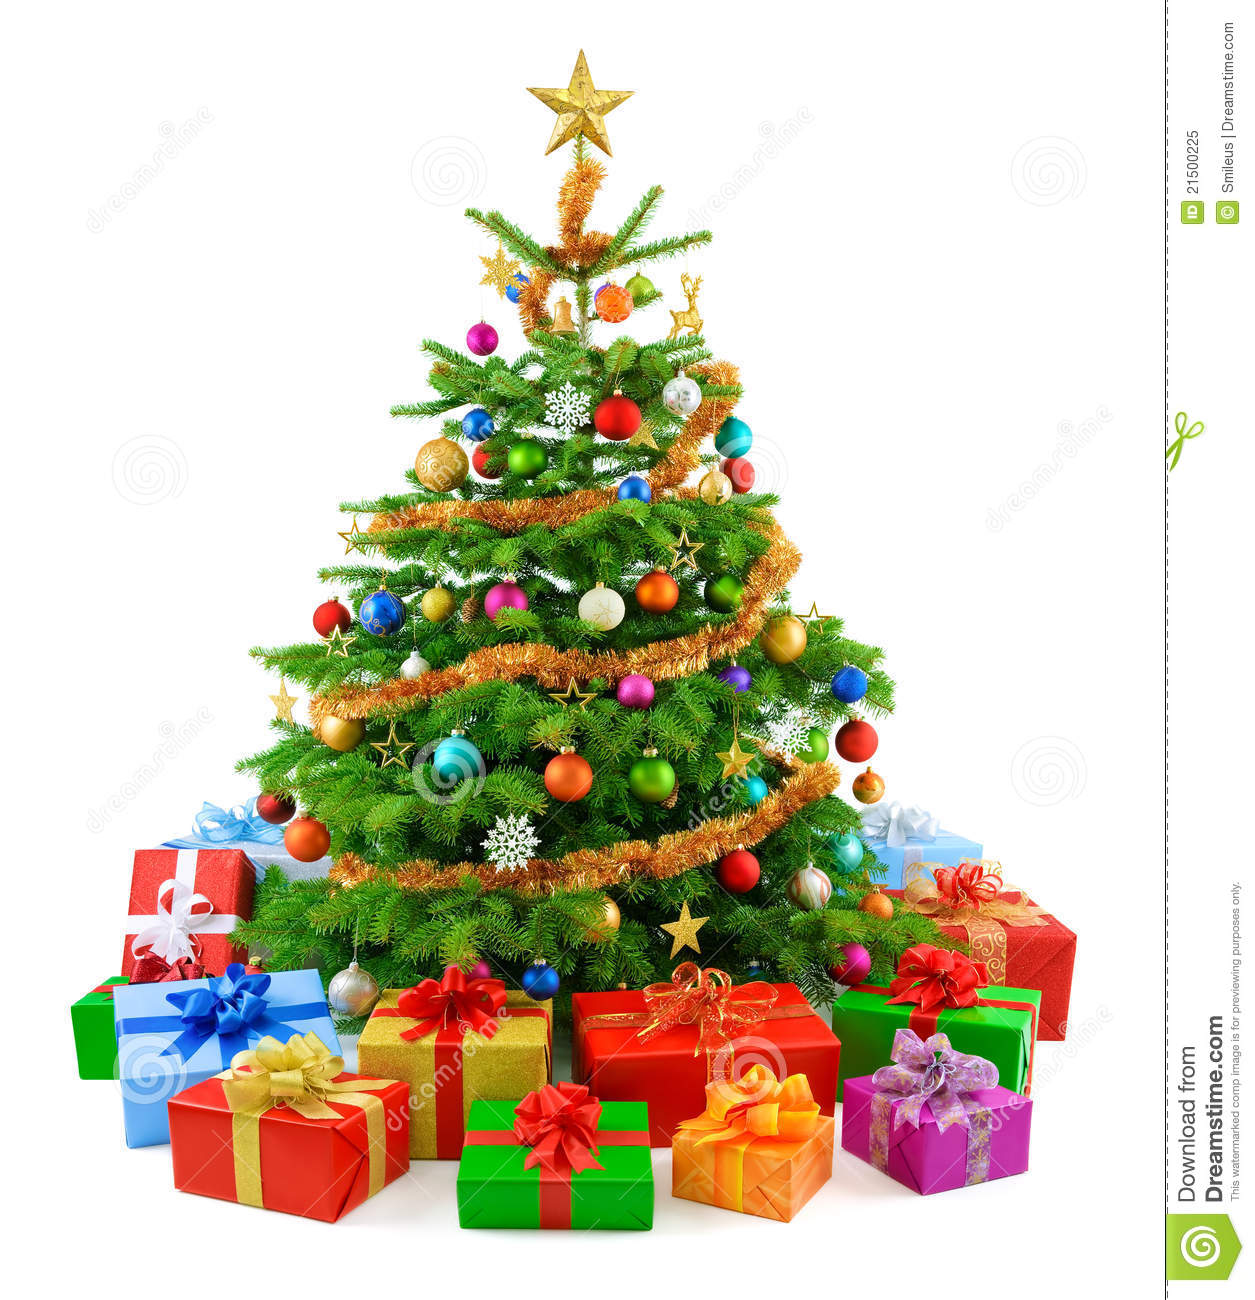 Lush Christmas Tree With Colorful Gift Boxes Stock Image Image Of